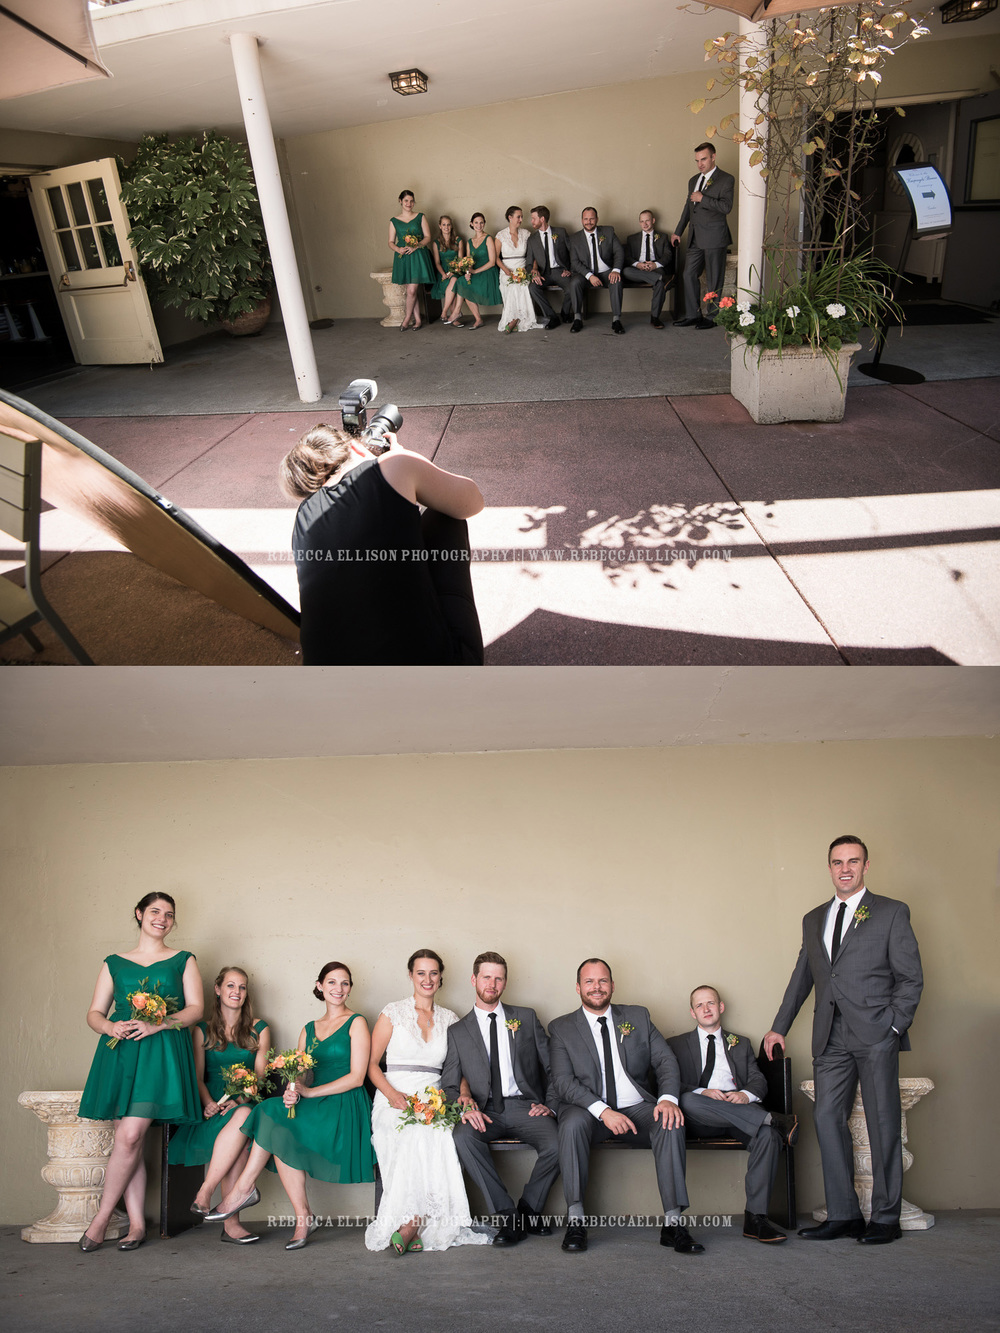 Wedding behind the scenes of bridal party shot